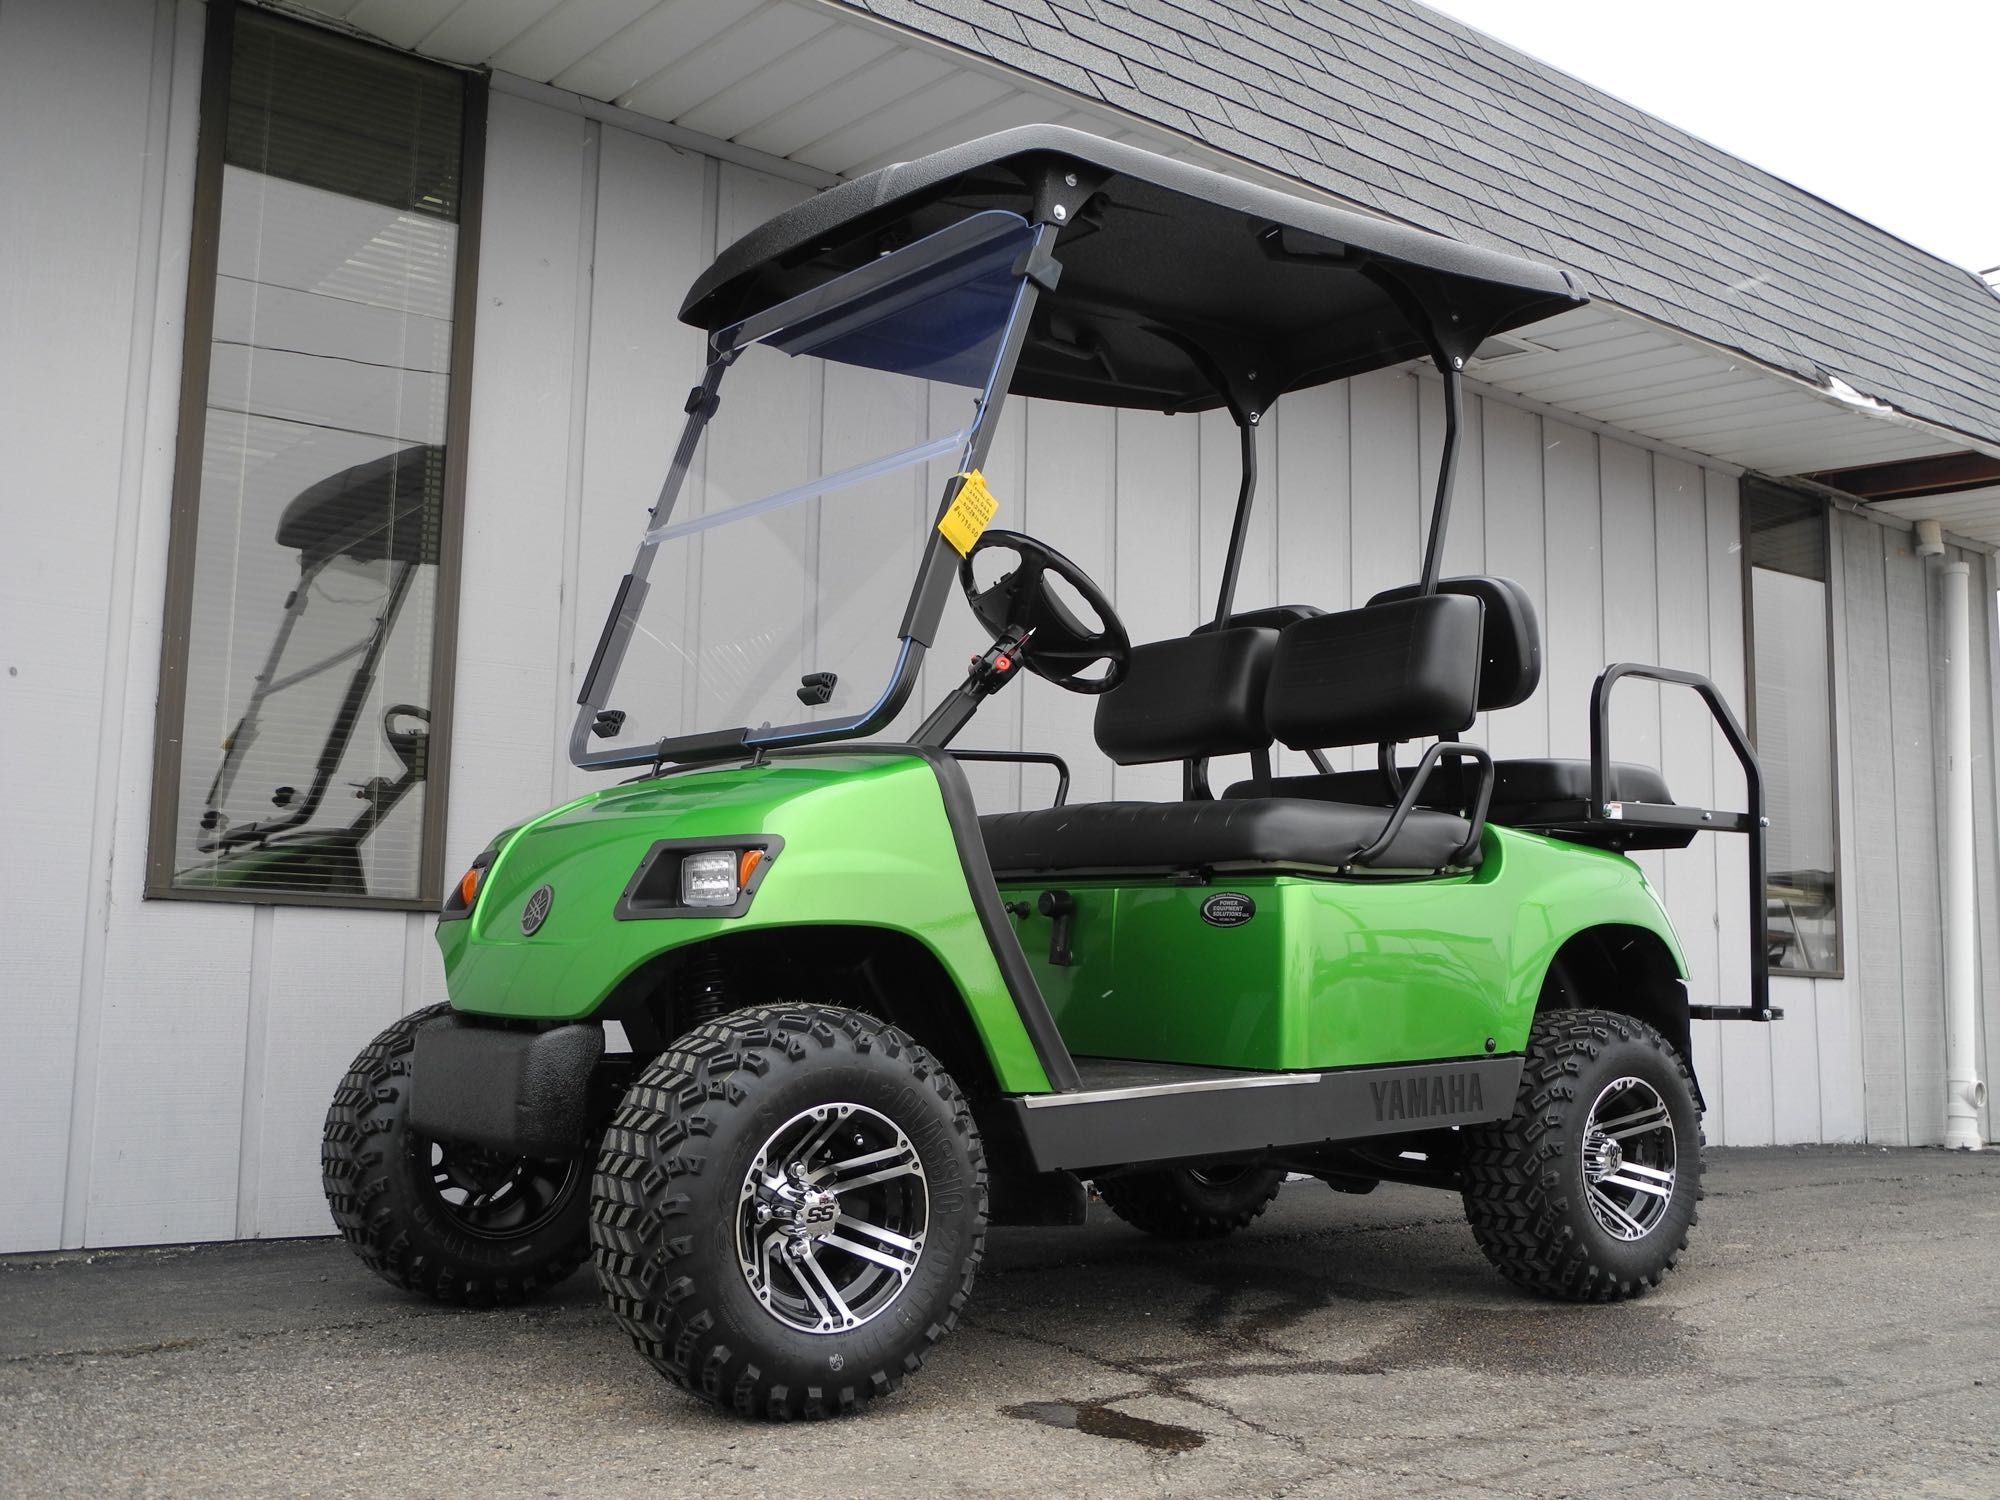 We were going to post this custom street ready Yamaha G22 gas golf ...